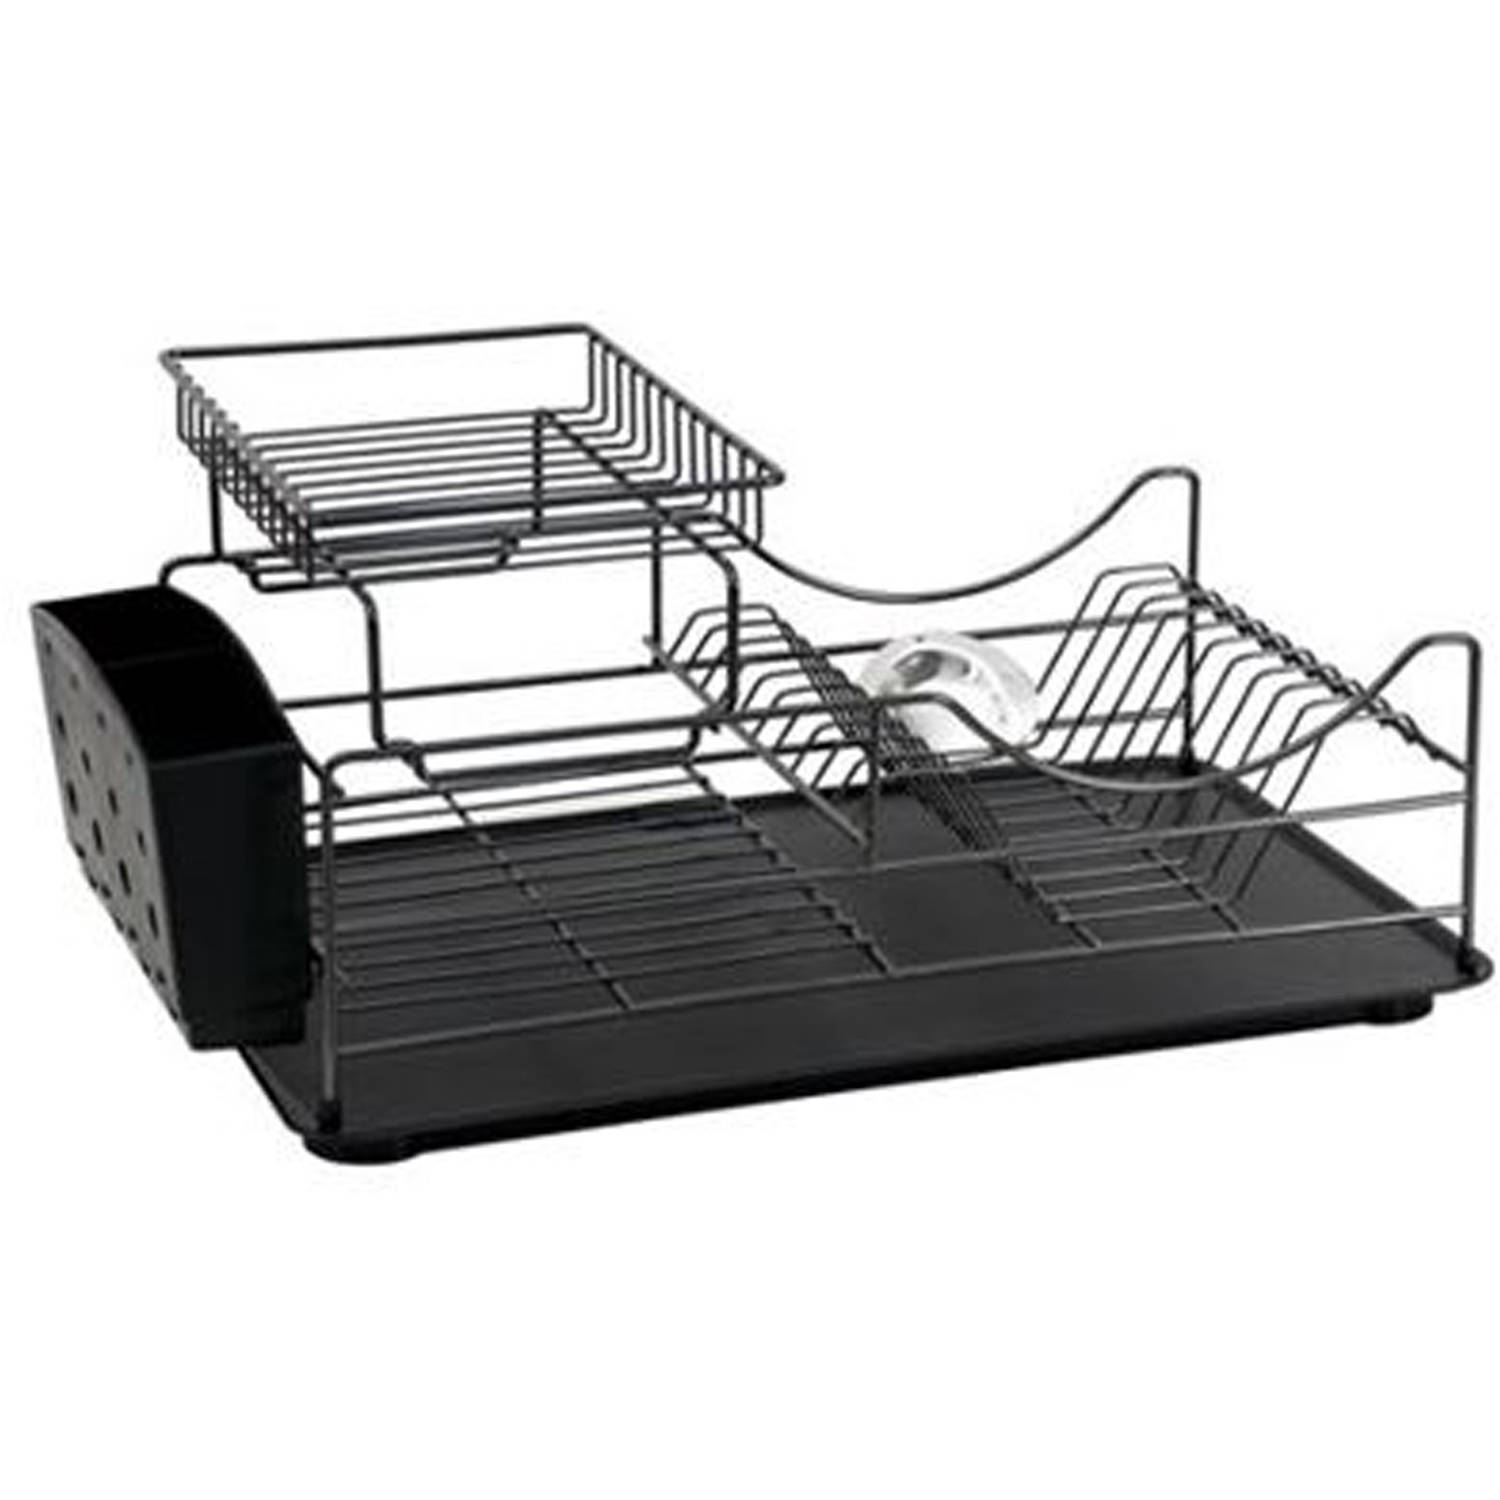 Better Homes and Gardens Black Wire Dish Rack by Lifetime Brands